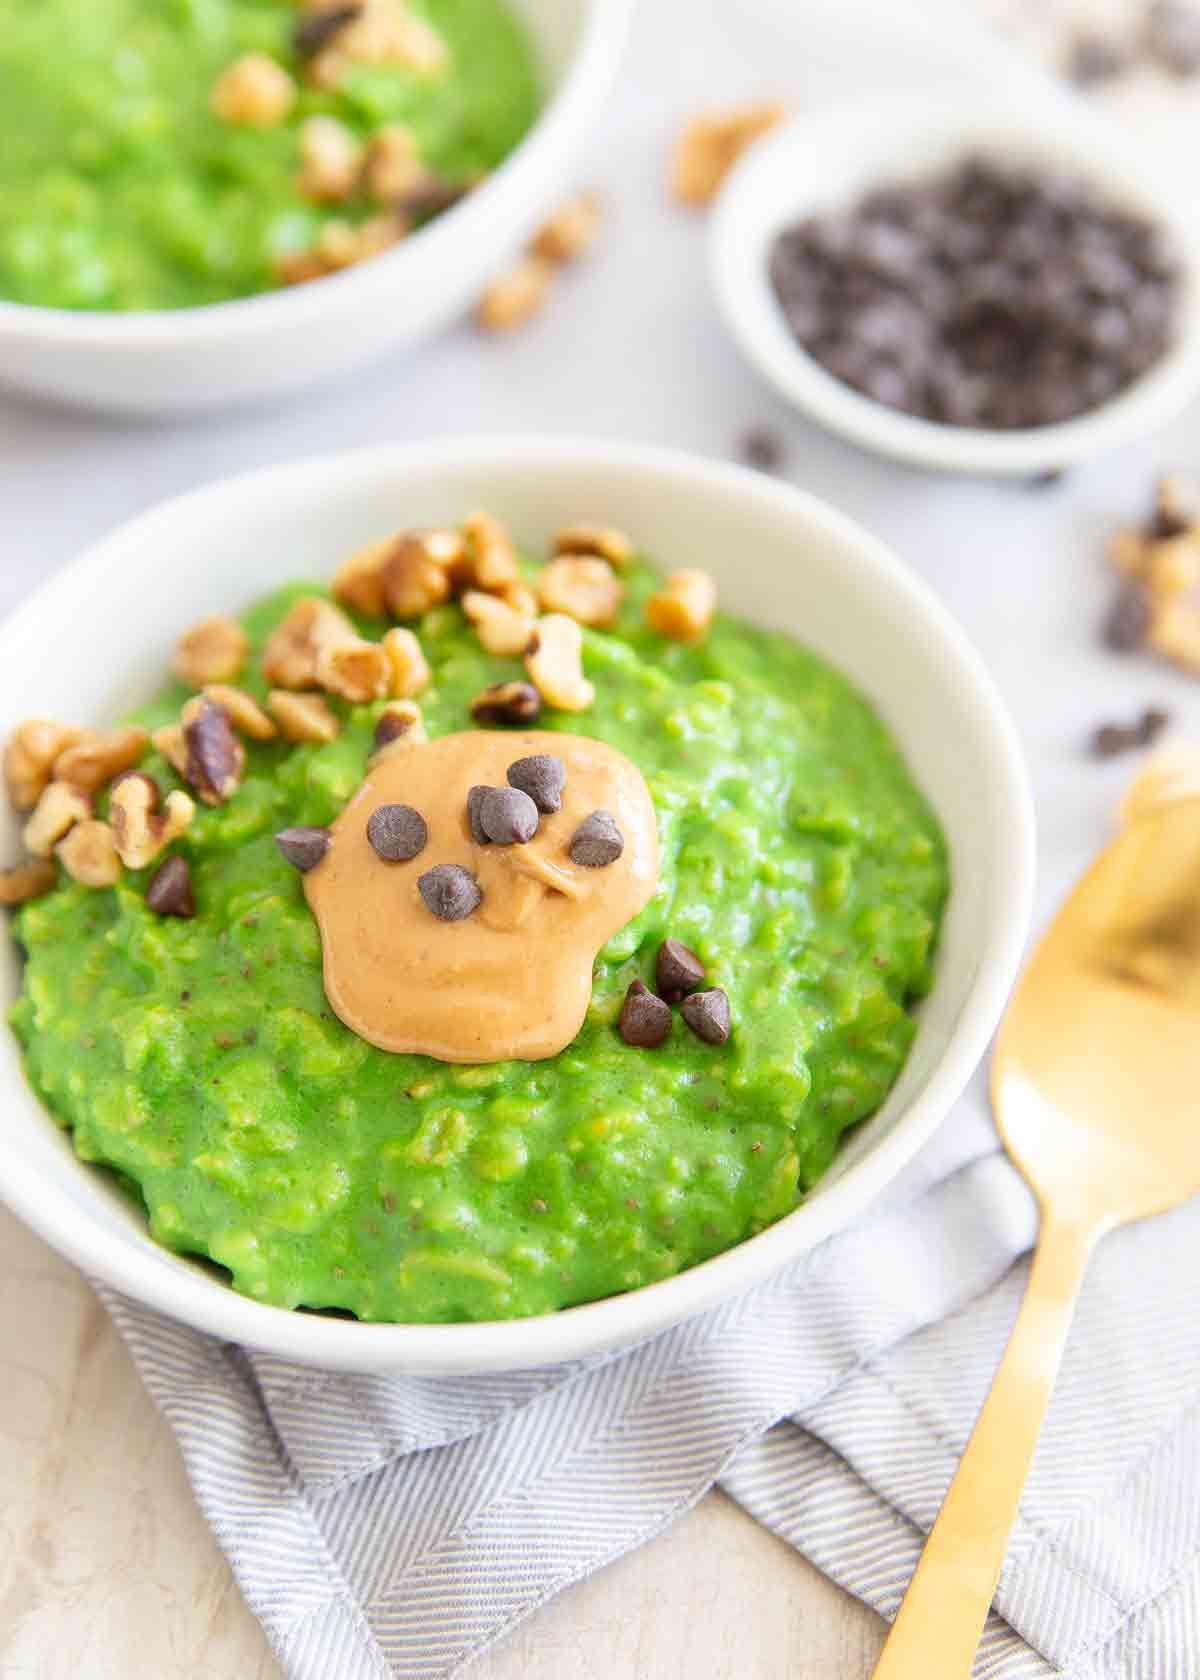 This green oatmeal is the perfect St. Patrick's Day breakfast recipe. Made with spinach, oats, bananas, milk it's a festive and healthy start to the day.